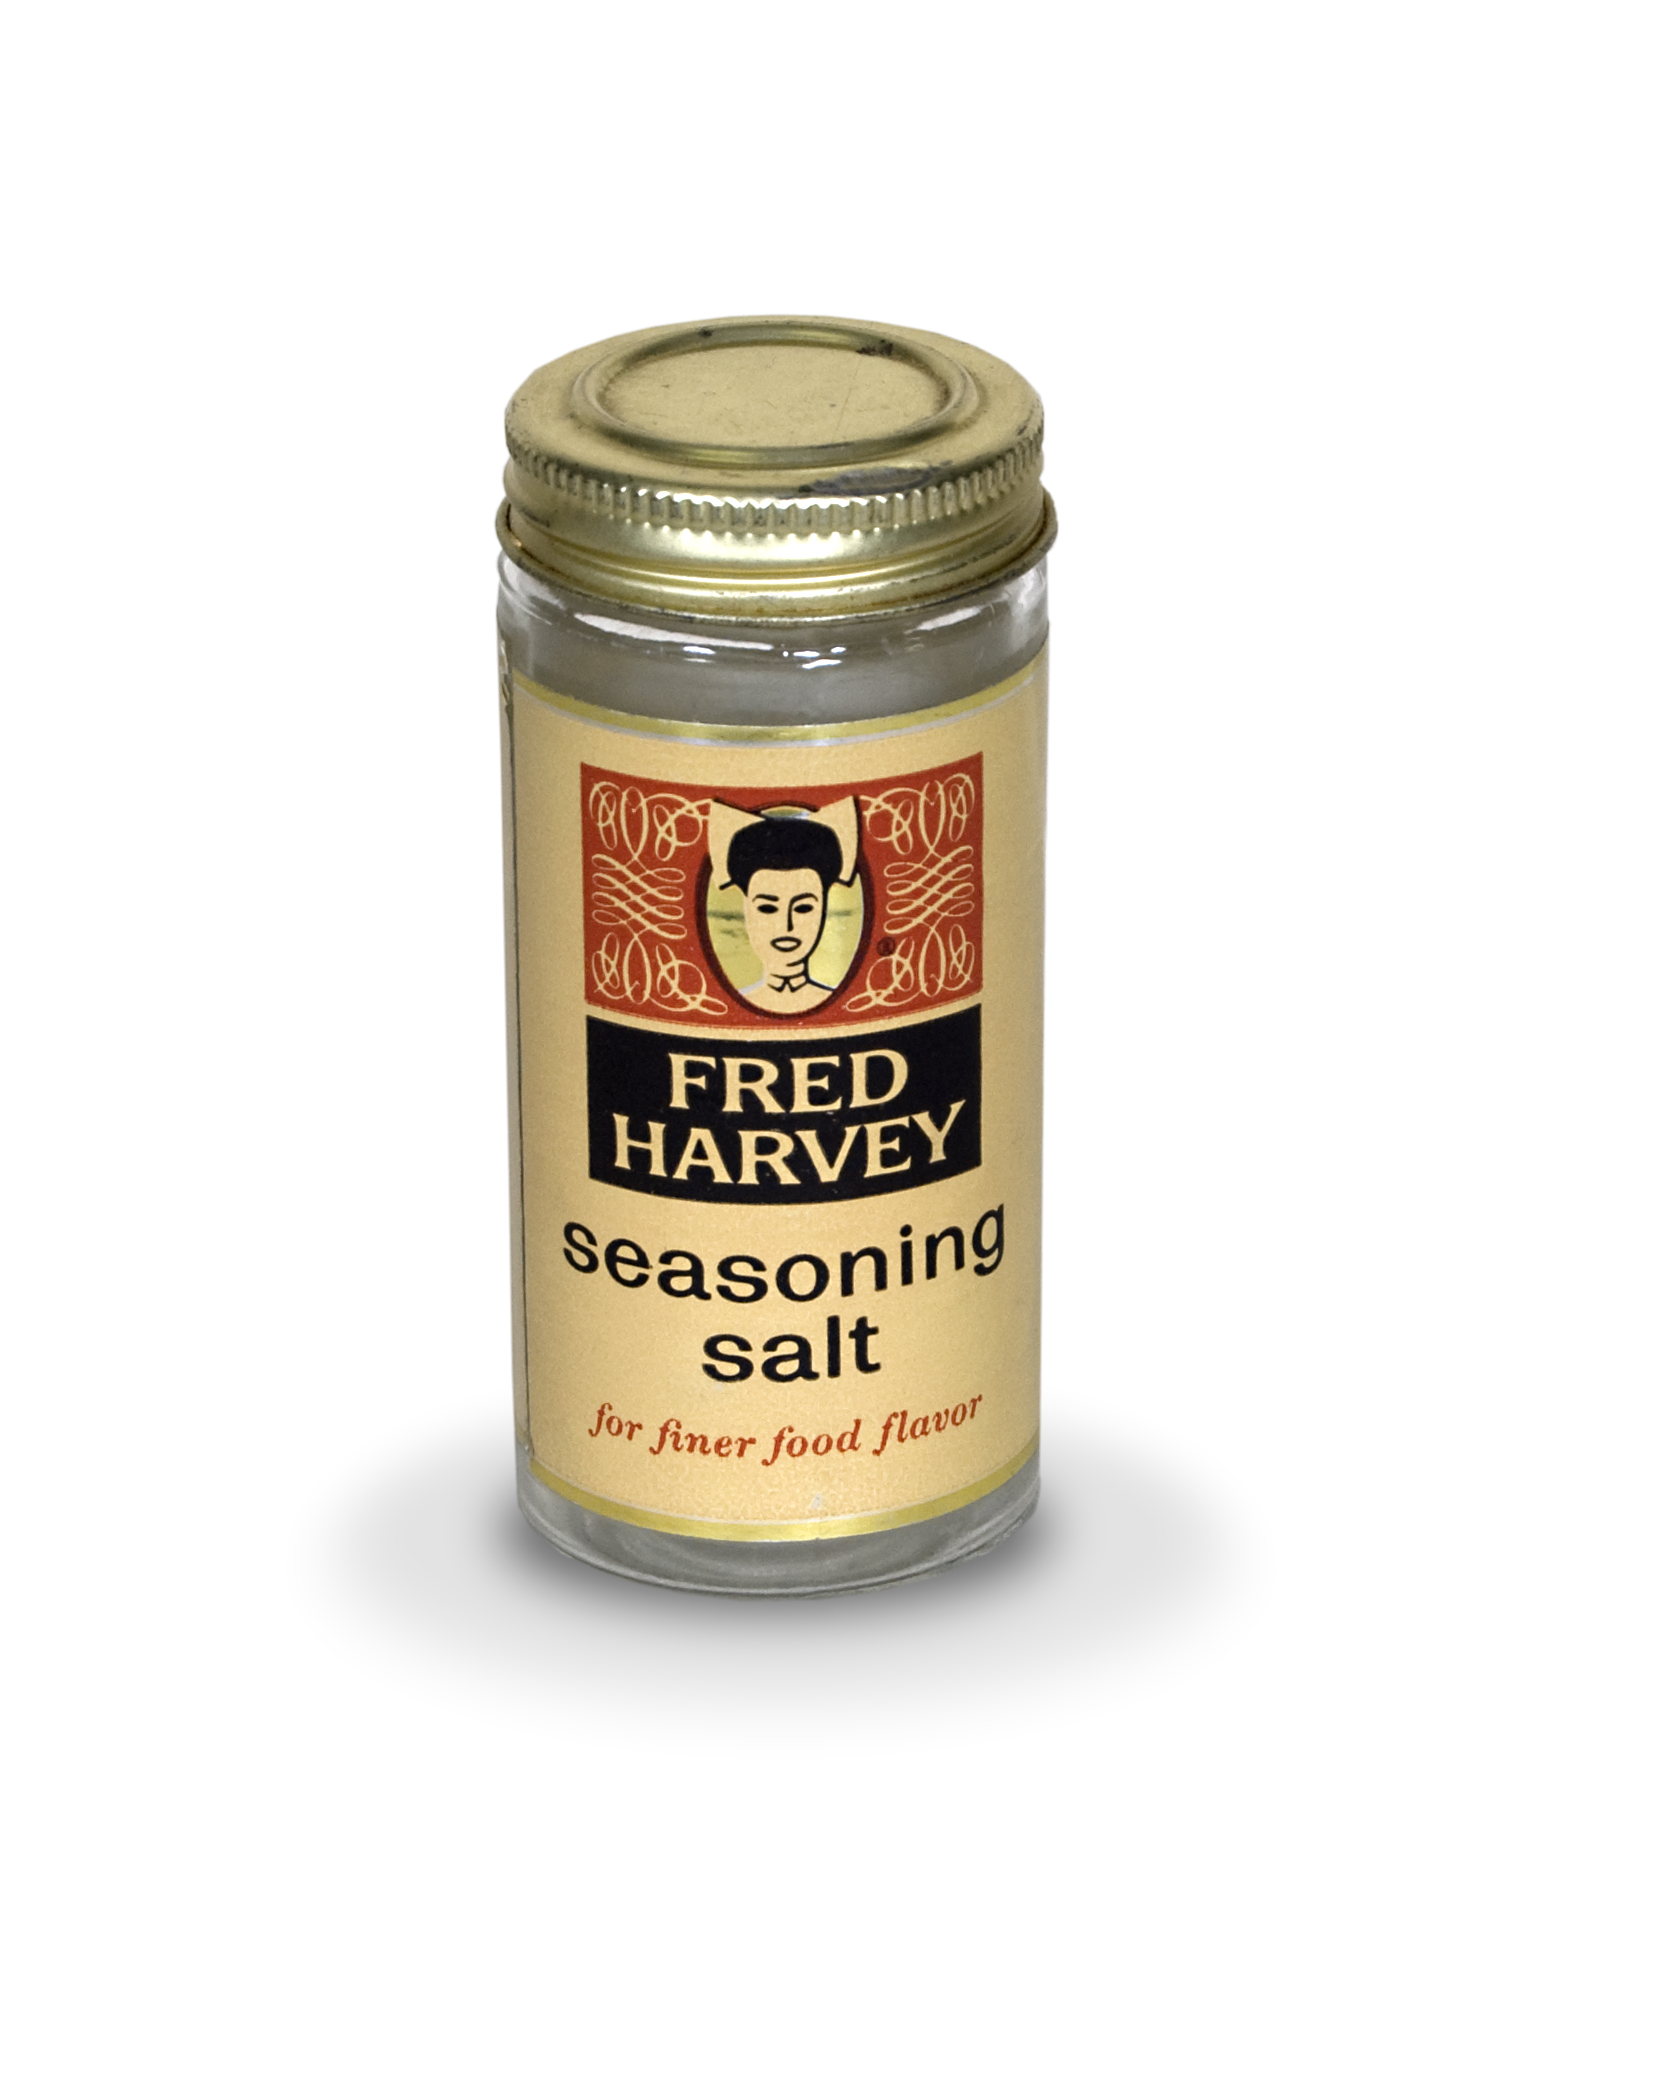 Fred Harvey seasoning salt